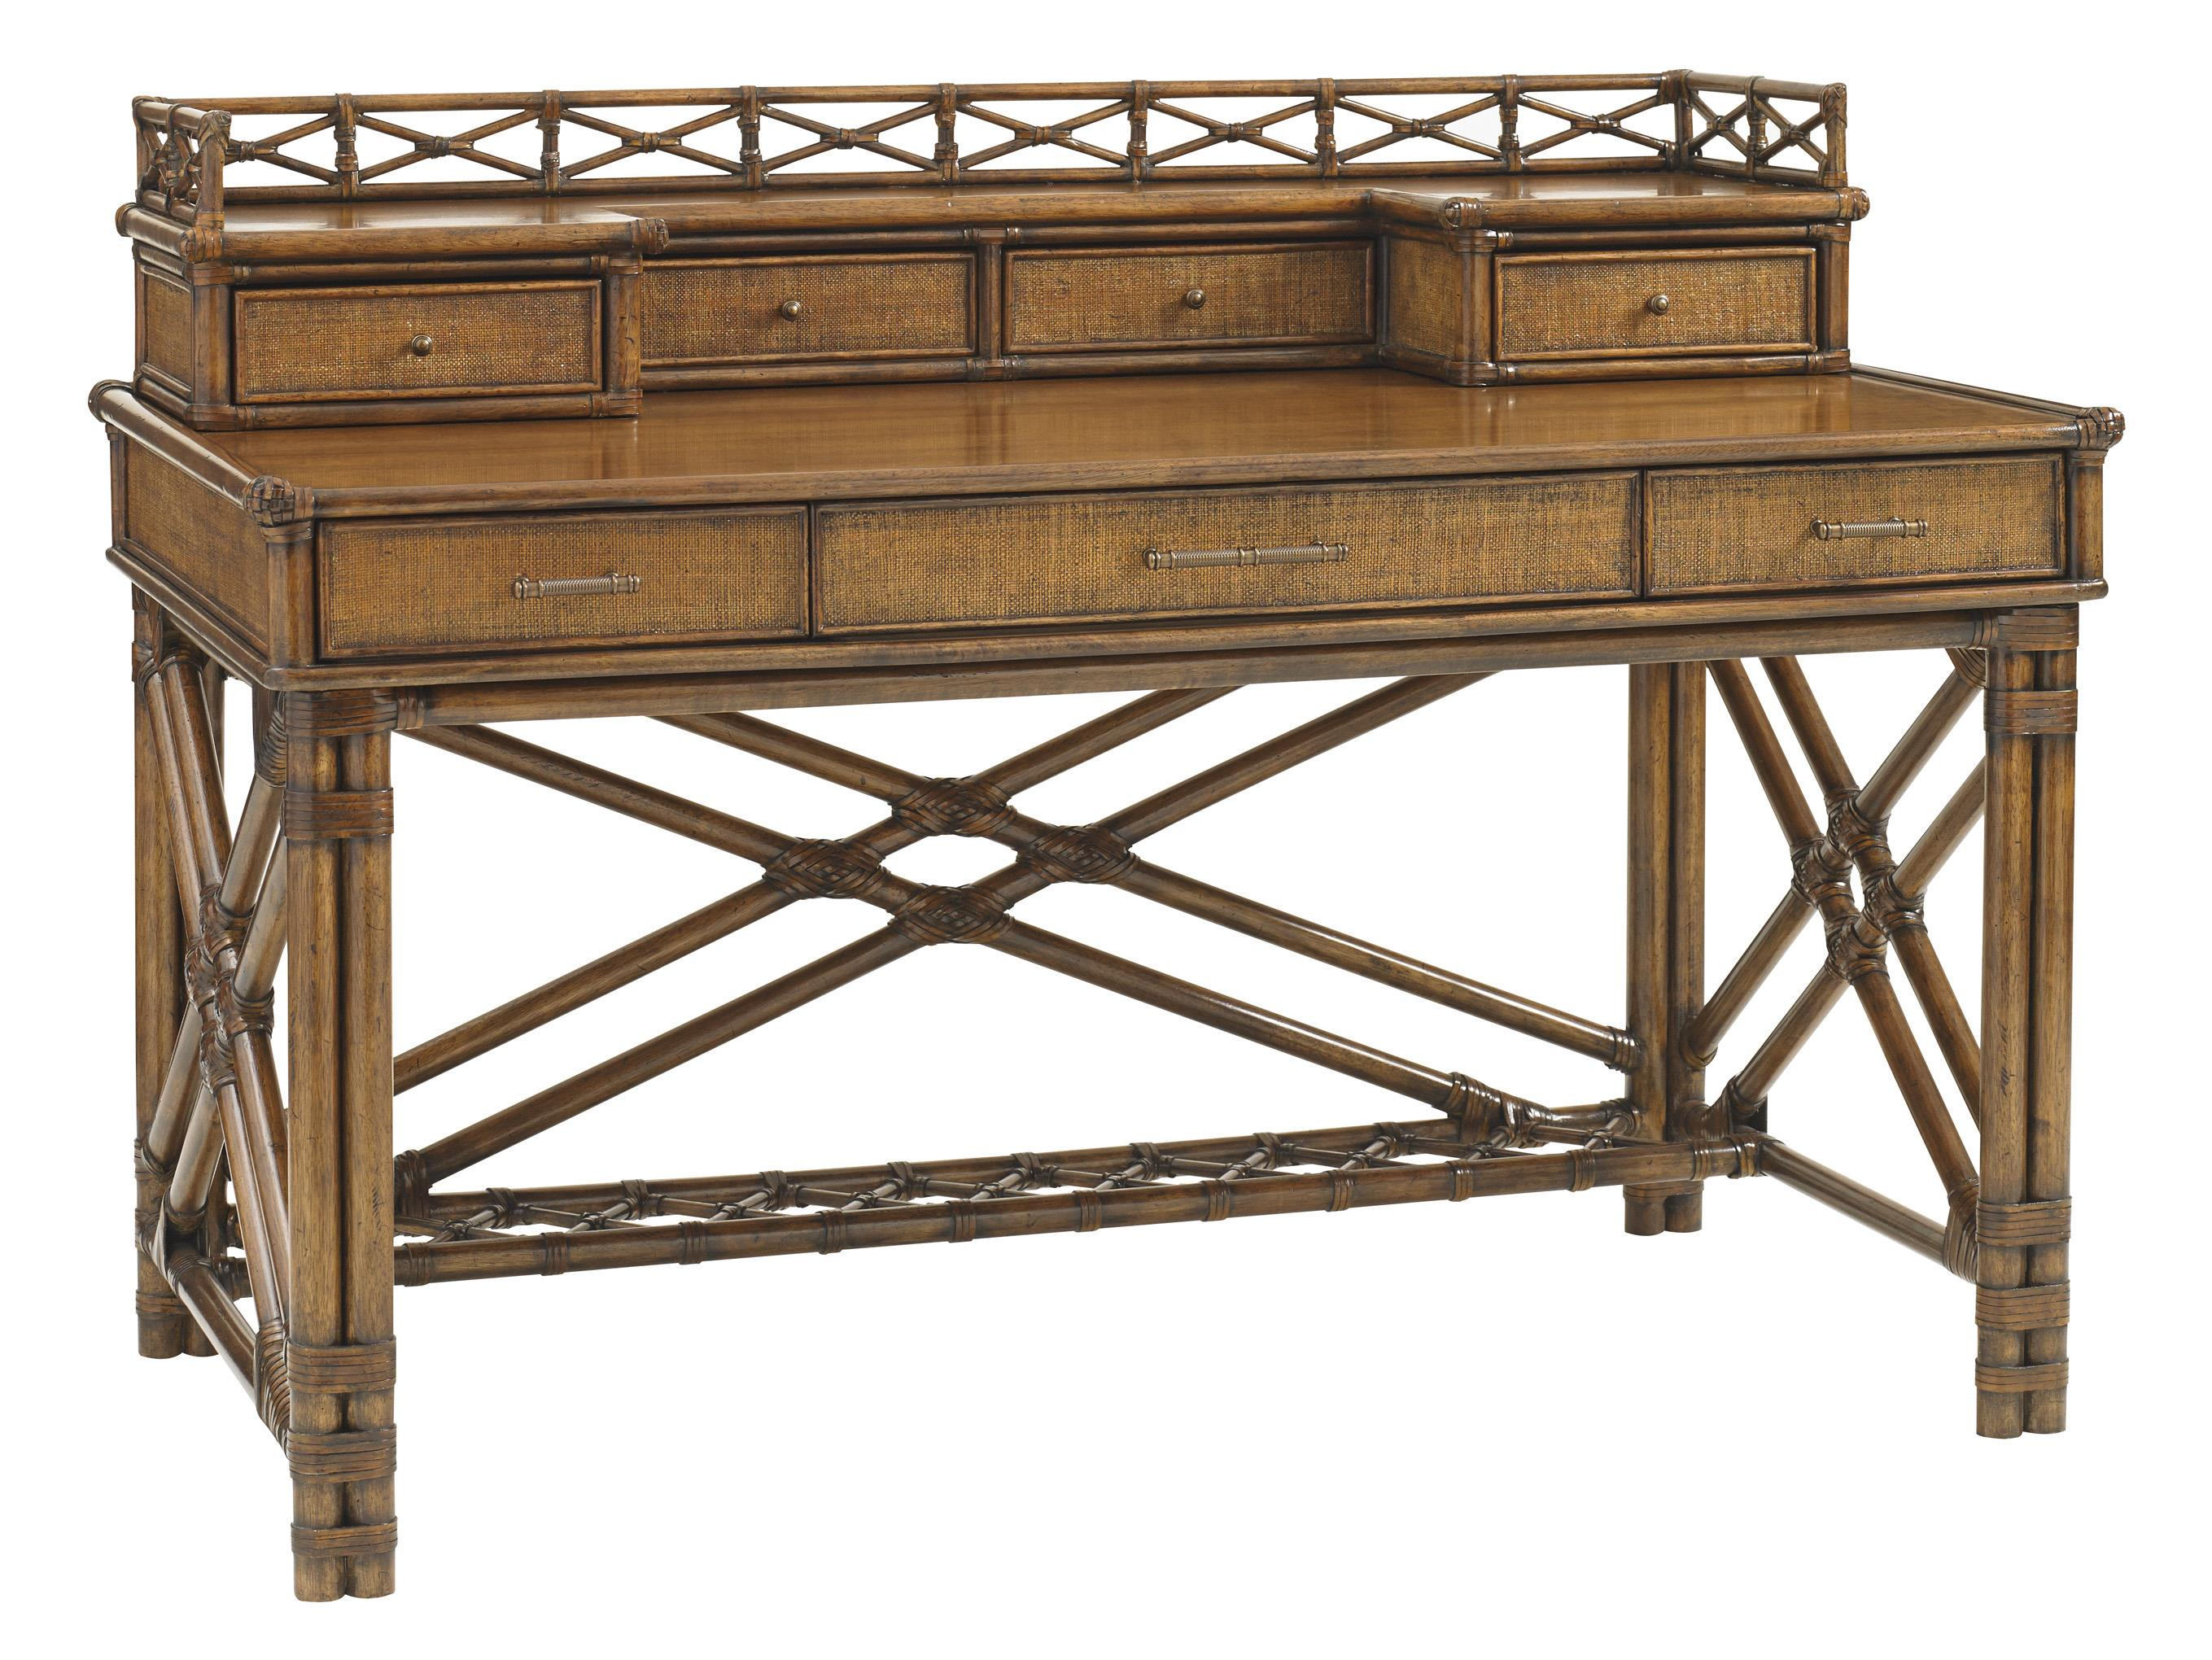 Bali Hai Enchanted Isle Desk and Box of Drawers by Tommy Bahama Home at Baer's Furniture